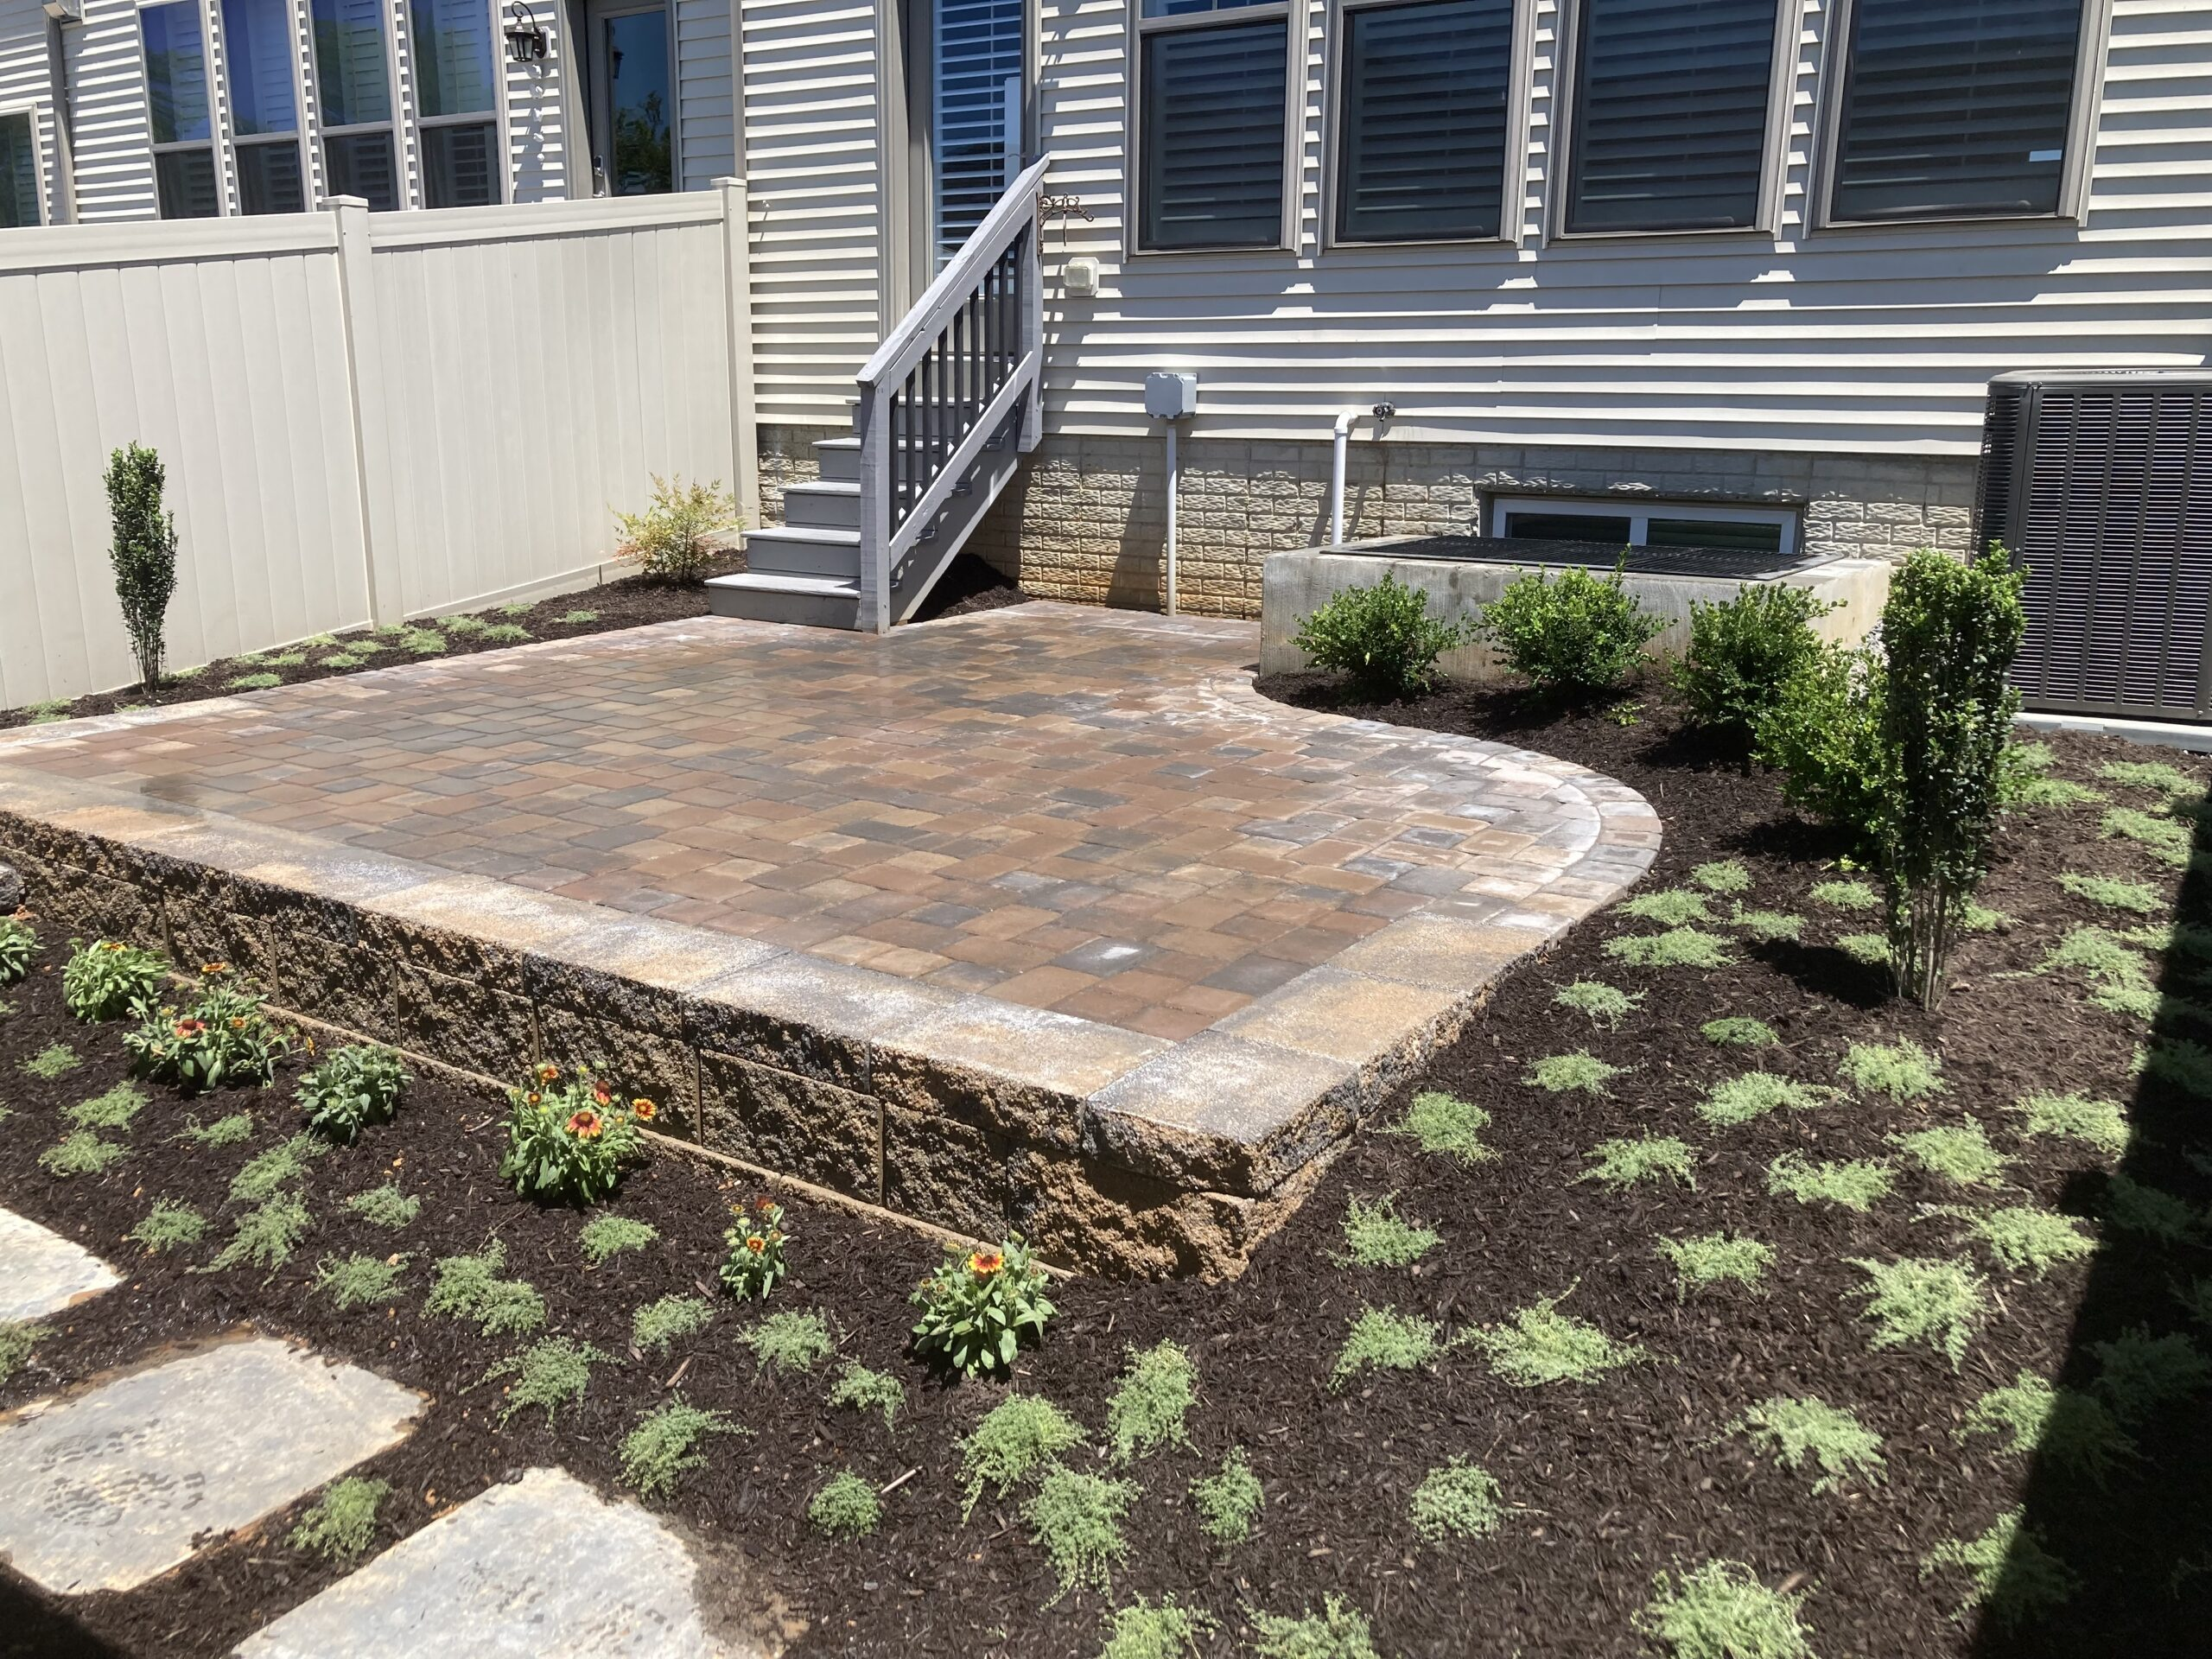 Row home backyard landscaped with Belgard pavers, shrubs and flowers